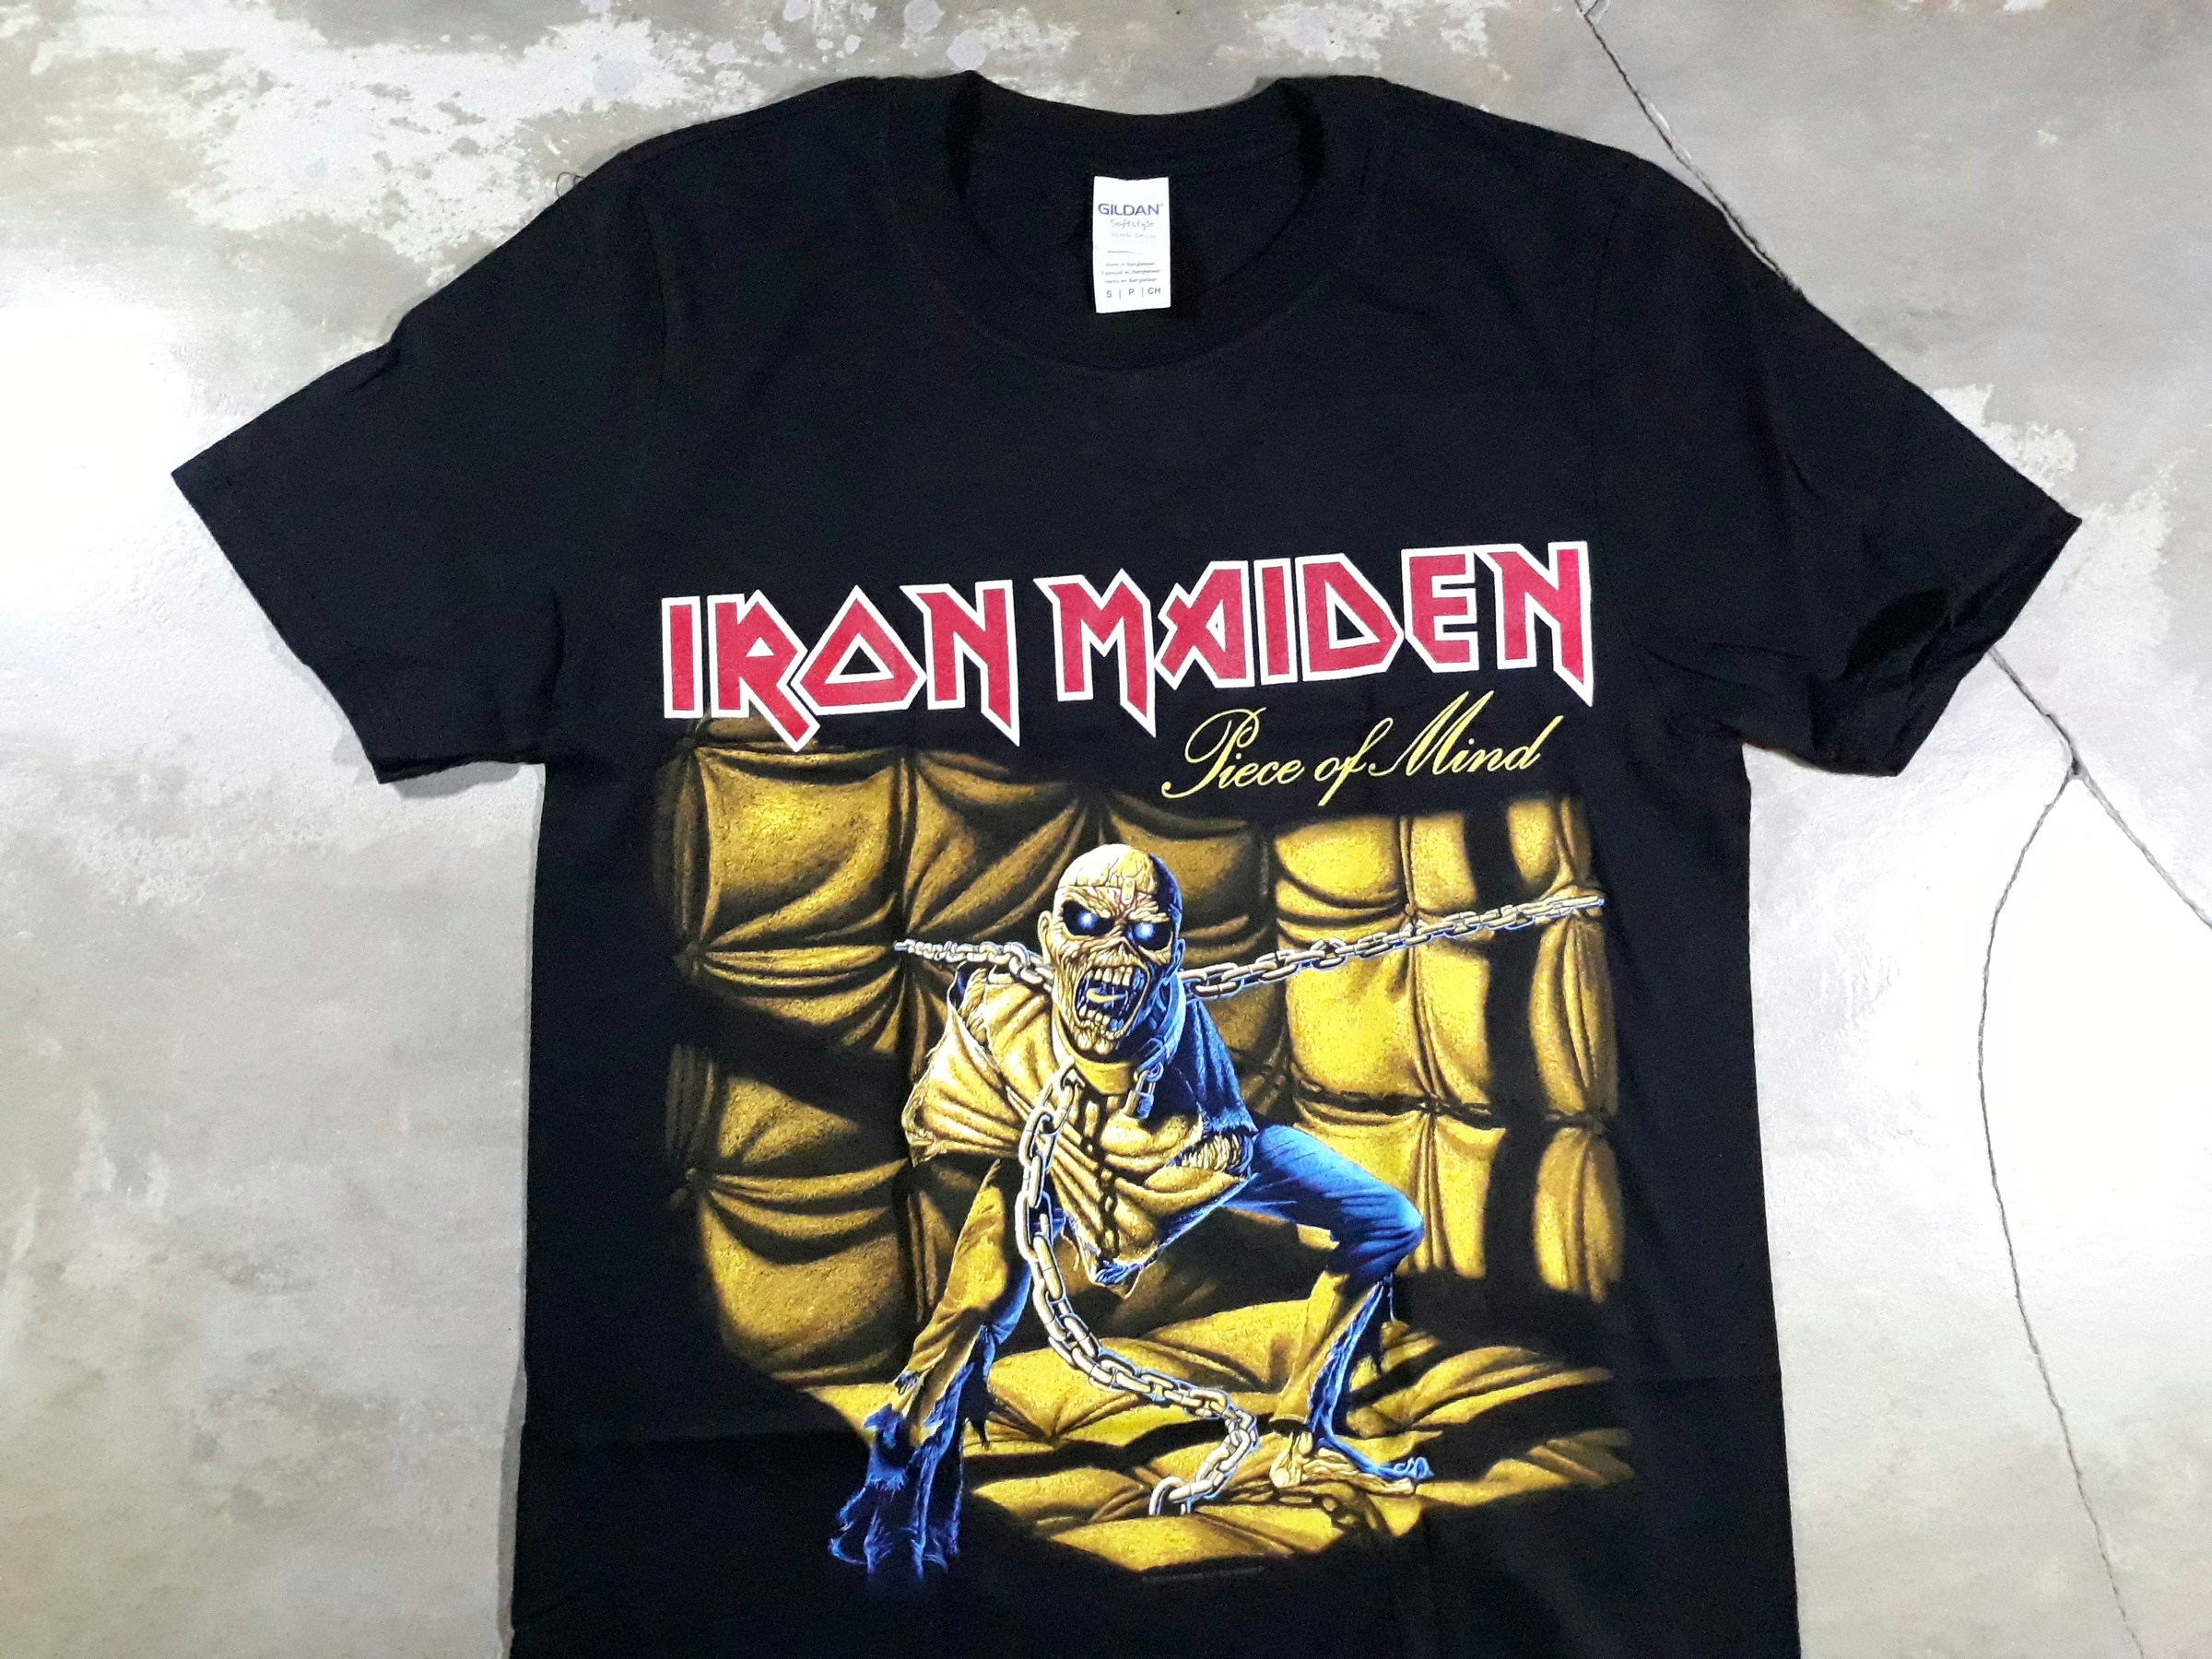 Iron maiden-pierce of mind.jpeg